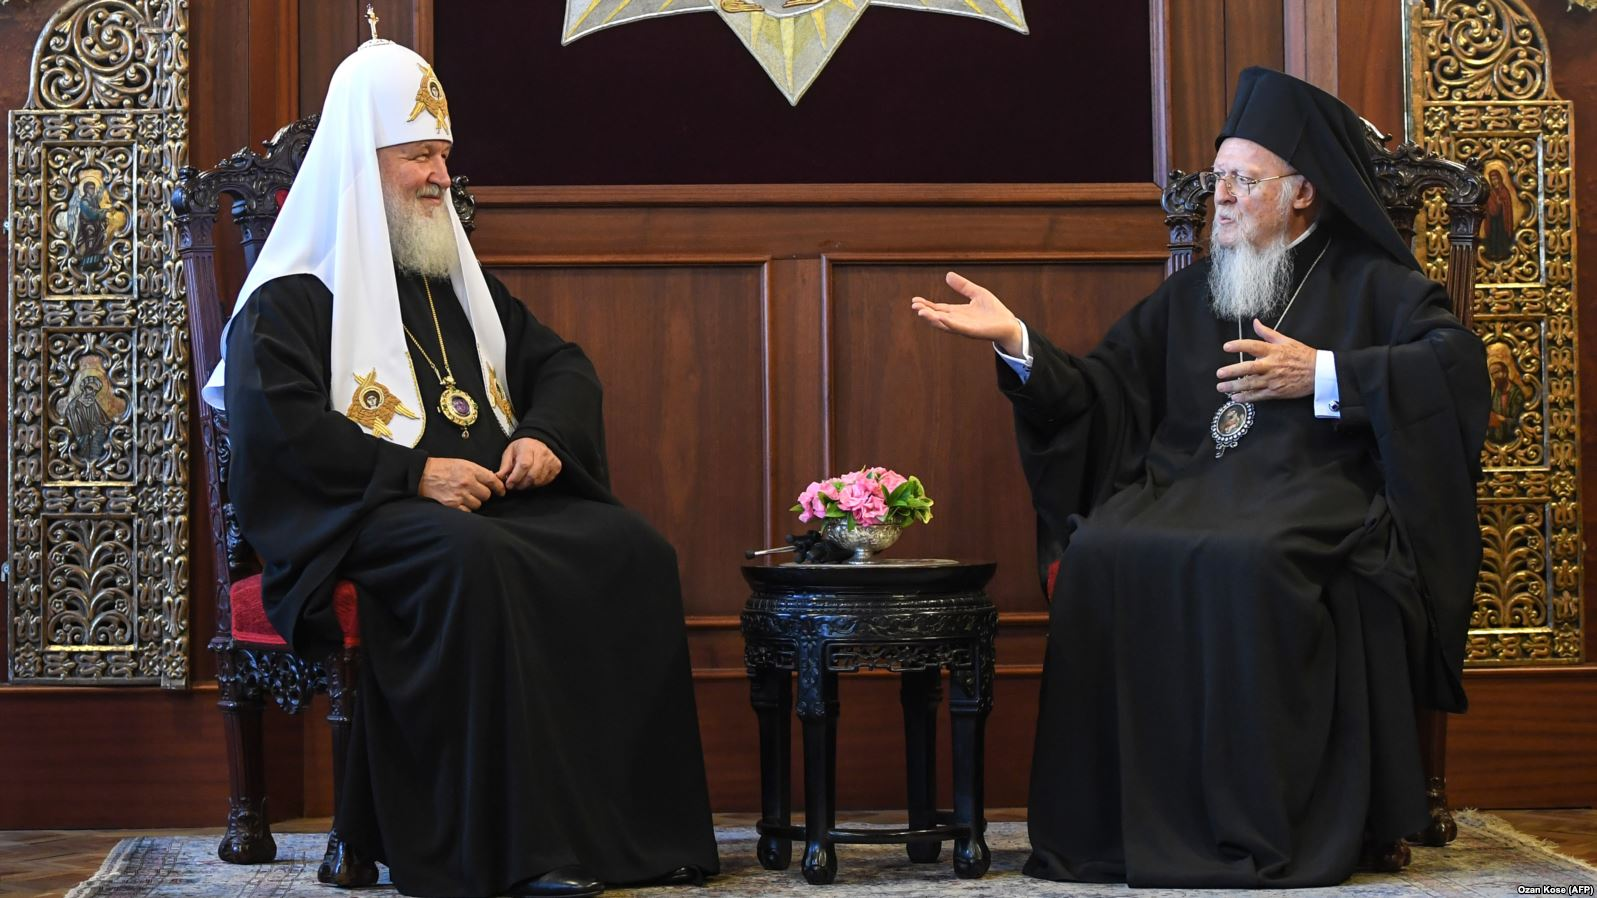 [Photo: His Holiness Kirill, Primate of the Russian Orthodox Church and Patriarch of Moscow and all Rus' (left), and His All-Holiness Bartholomew I, Archbishop of Constantinople and Ecumenical Patriarch (right), meet in the Church of St. George in Istanbul, Turkey on Aug. 31, 2018. Source:  Ozan Kose/AFP ]